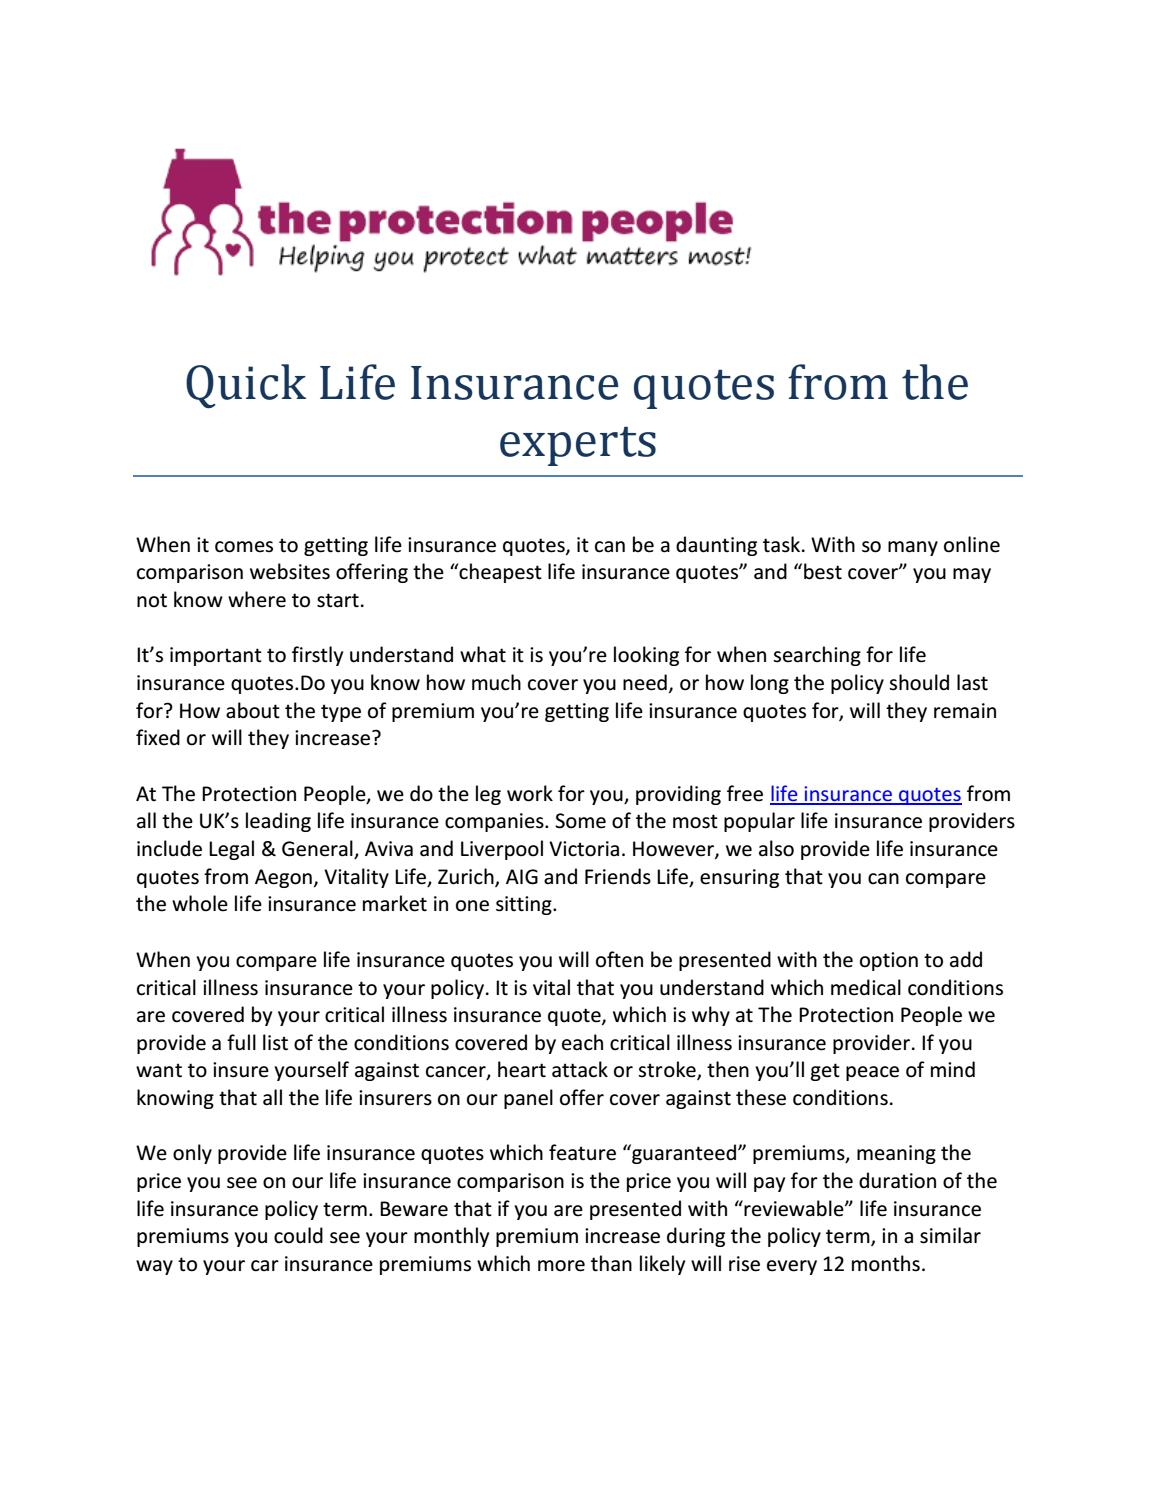 Life Insurance Quotes The Protection People  Quick Life Insurance Quotes From The